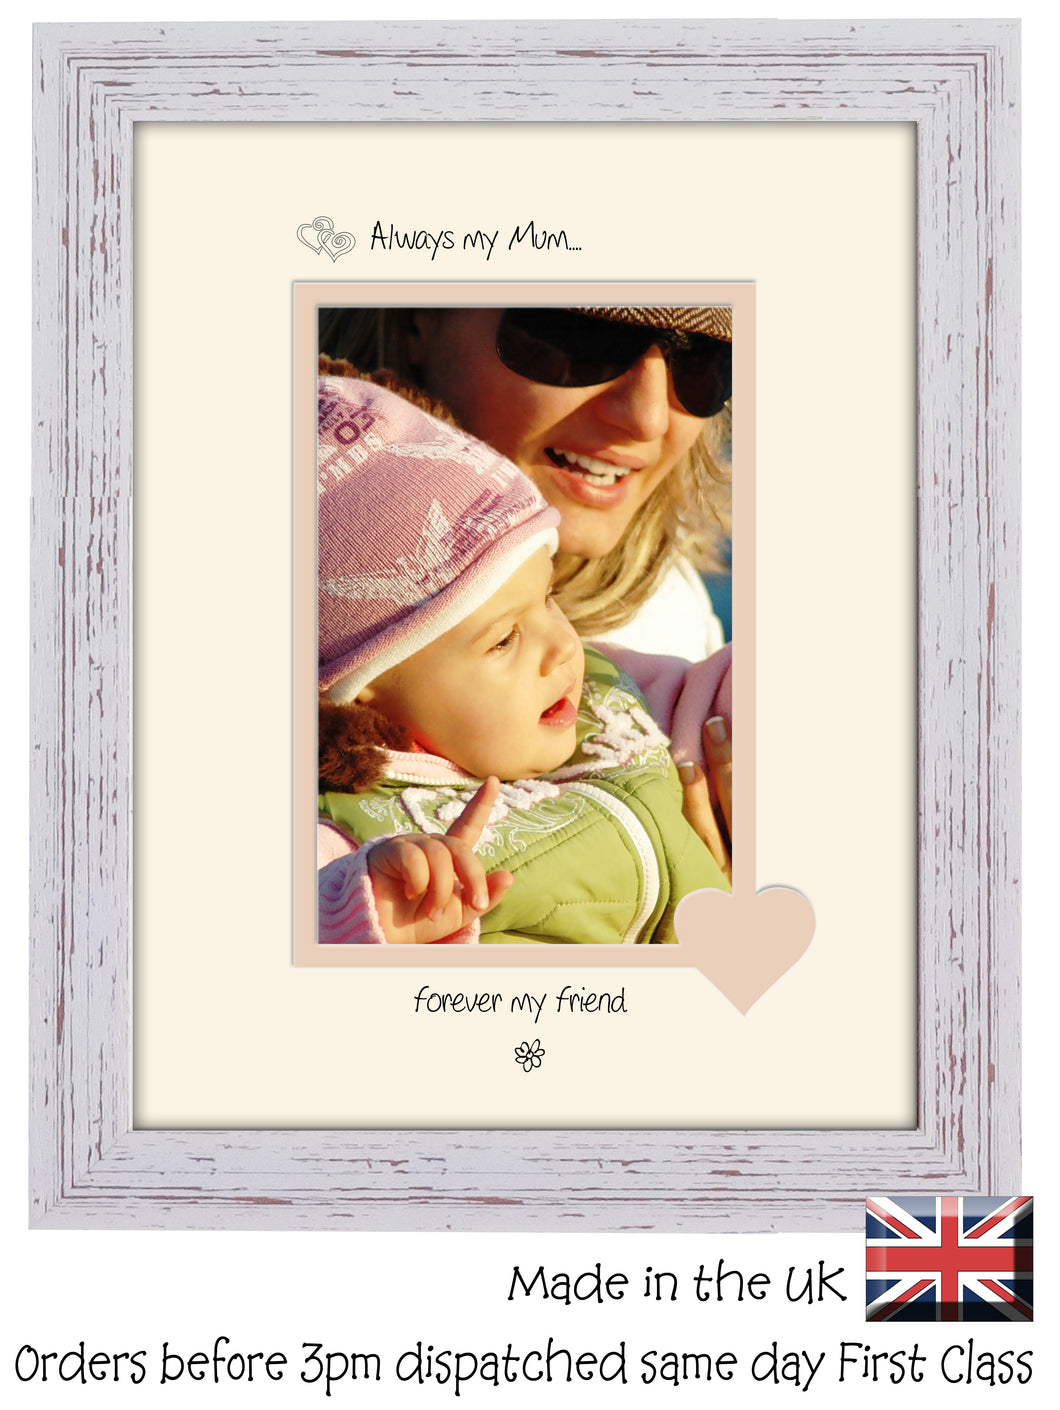 Mum Photo Frame - Always my mum... forever my friend Portrait photo frame 6